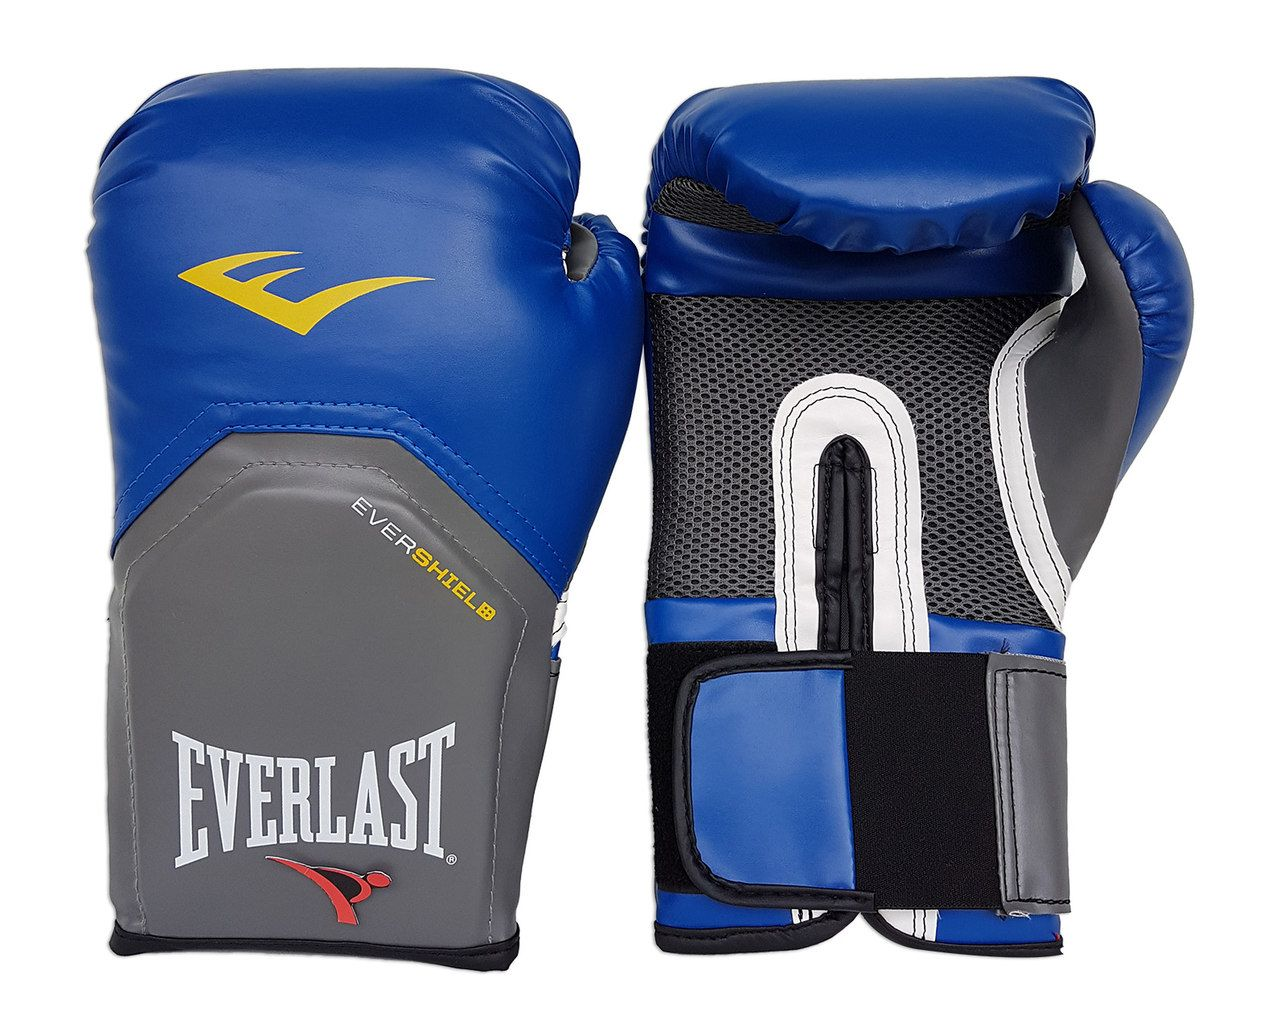 Kit de Boxe / Muay Thai 12oz - Azul - Pro Style - Everlast  - PRALUTA SHOP